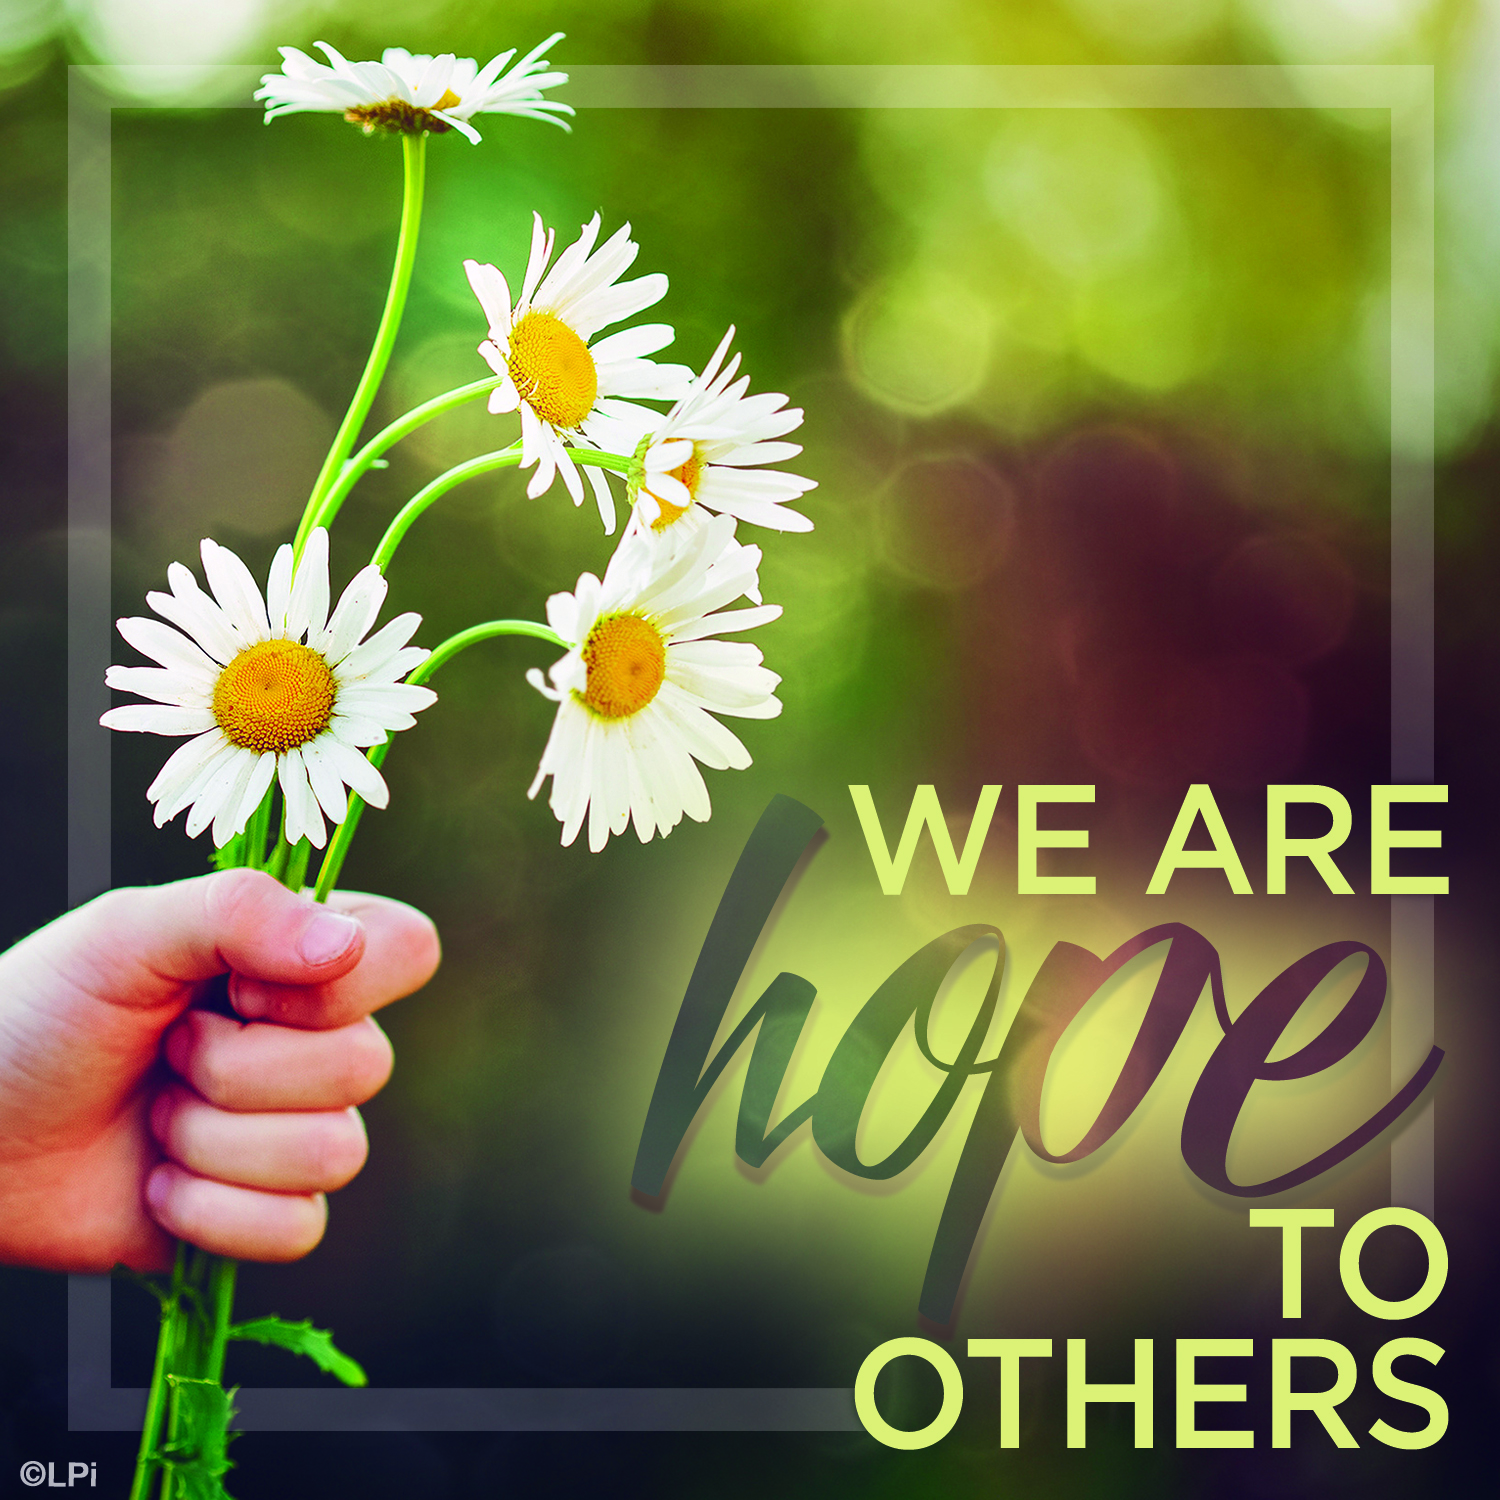 we are hope to others